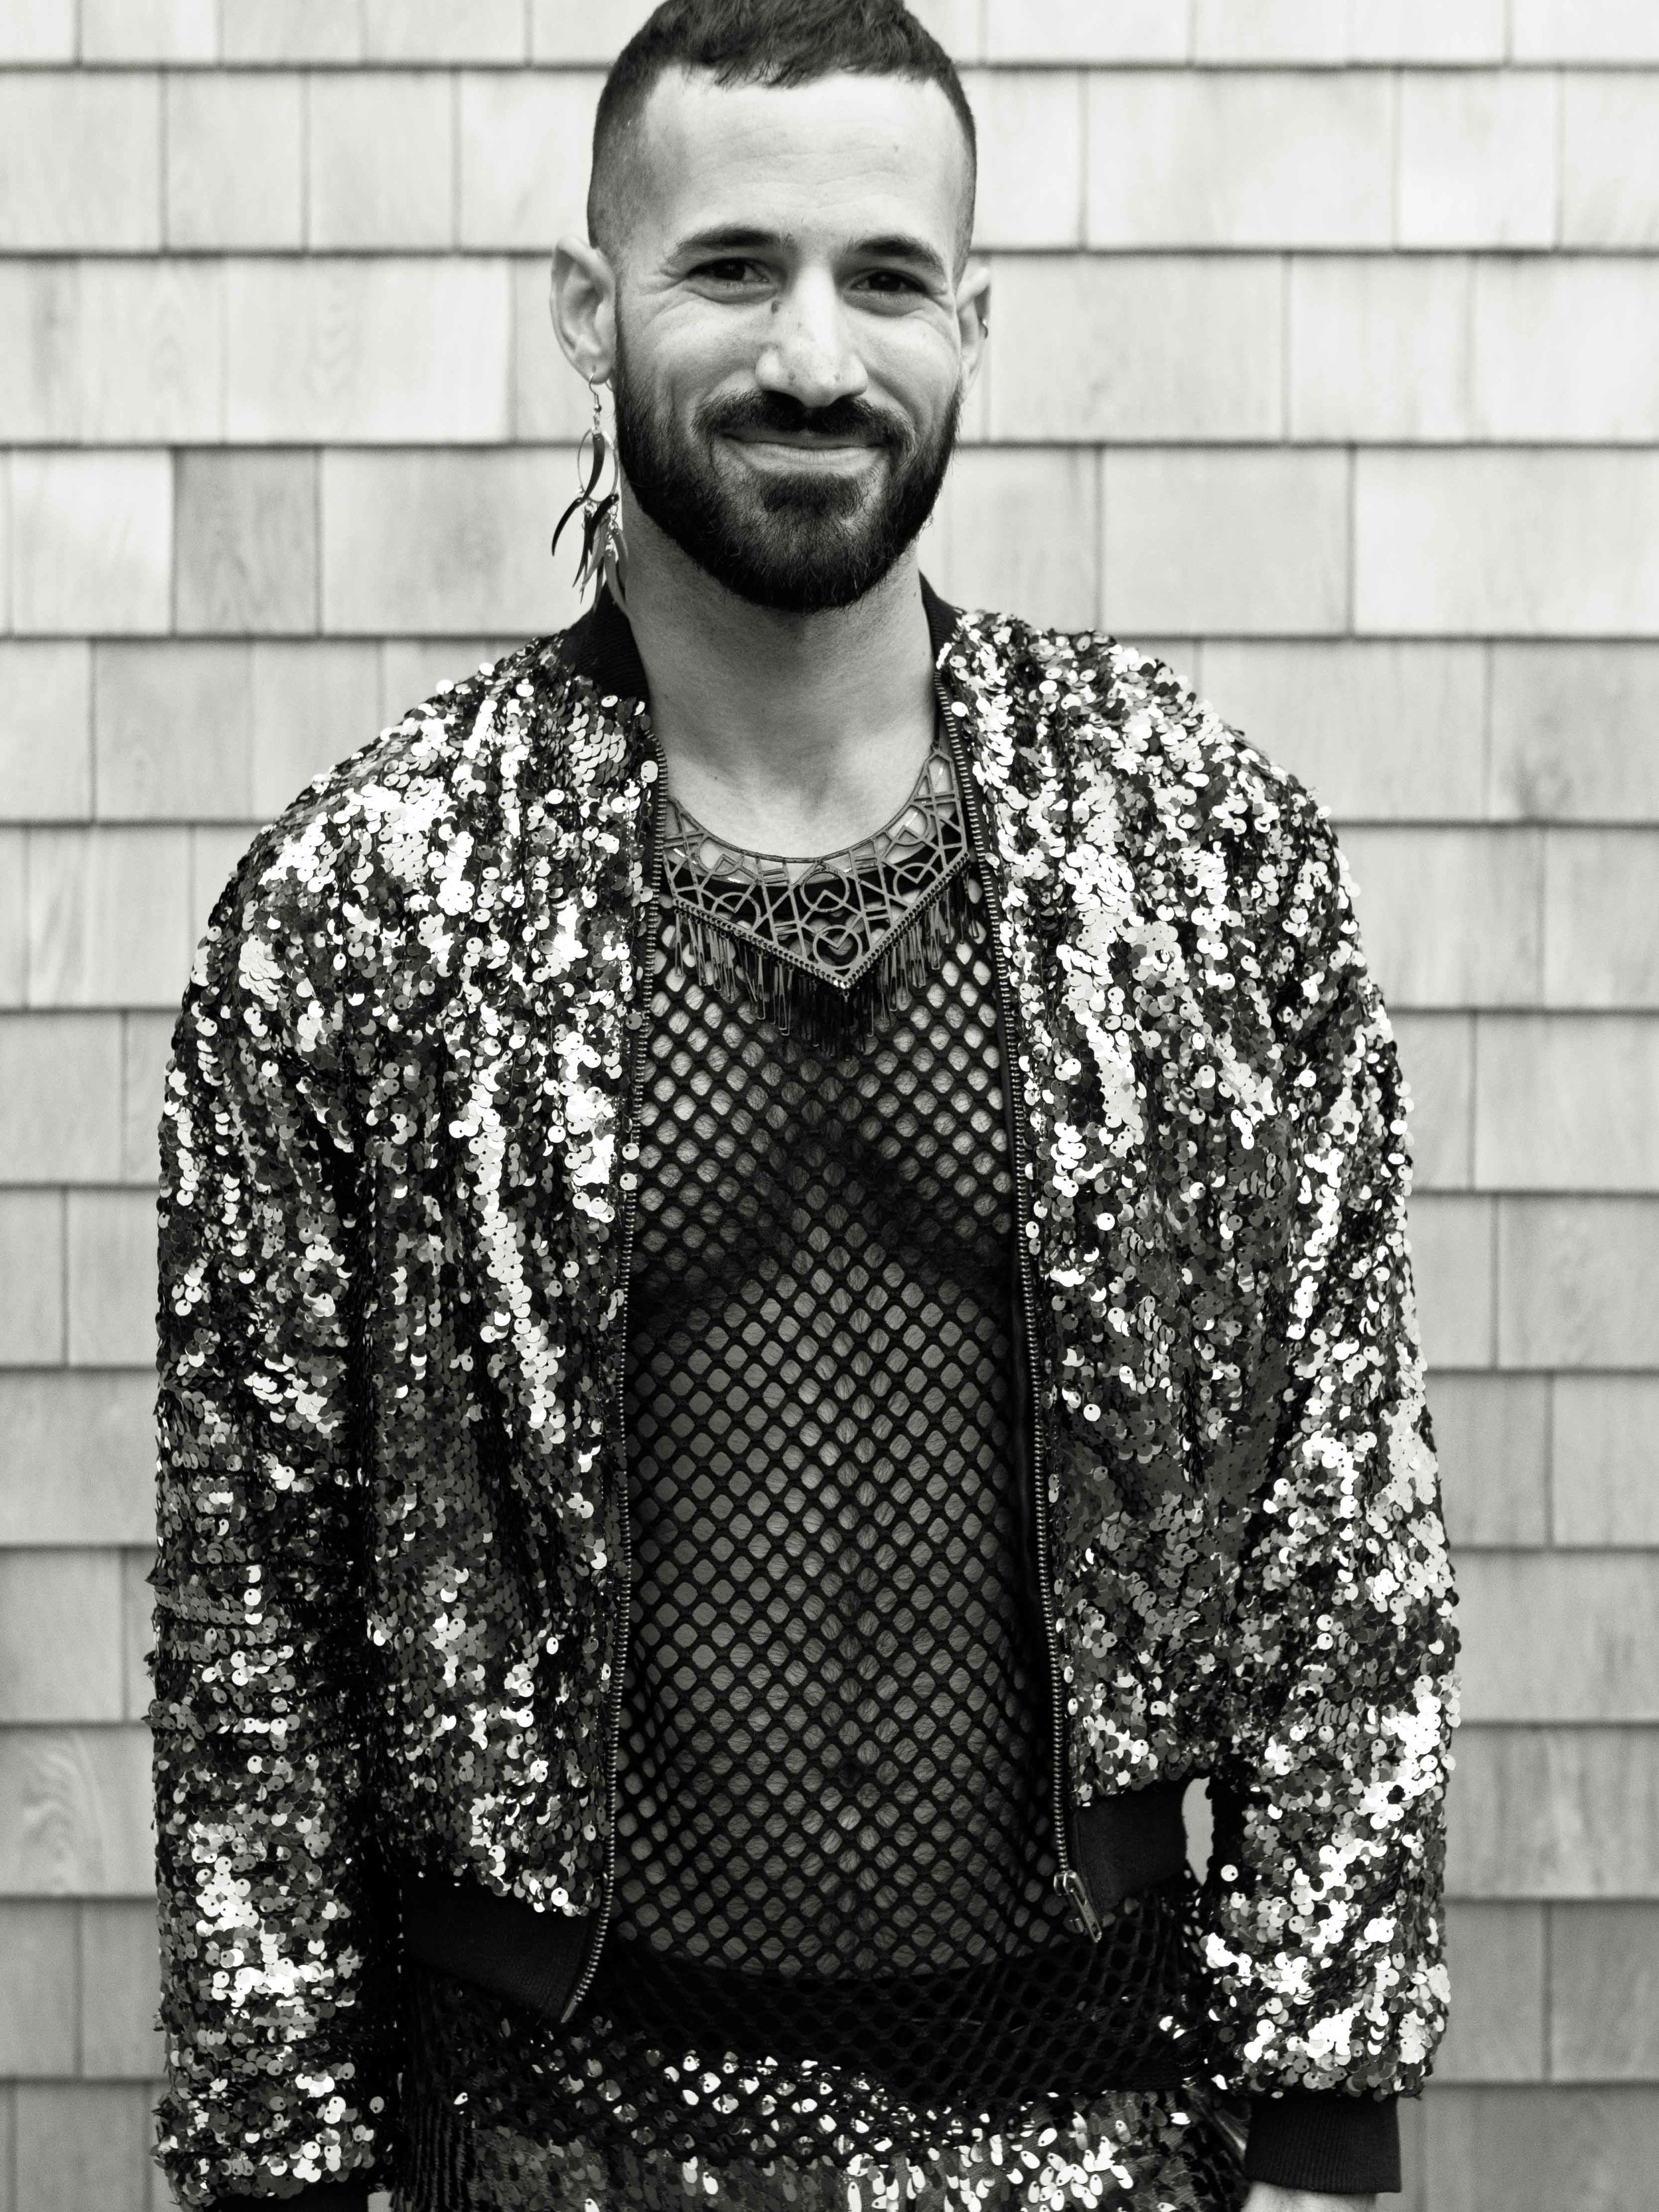 Portraits_In_Provincetown_2018_Credit_Emil_Cohen_223.jpg